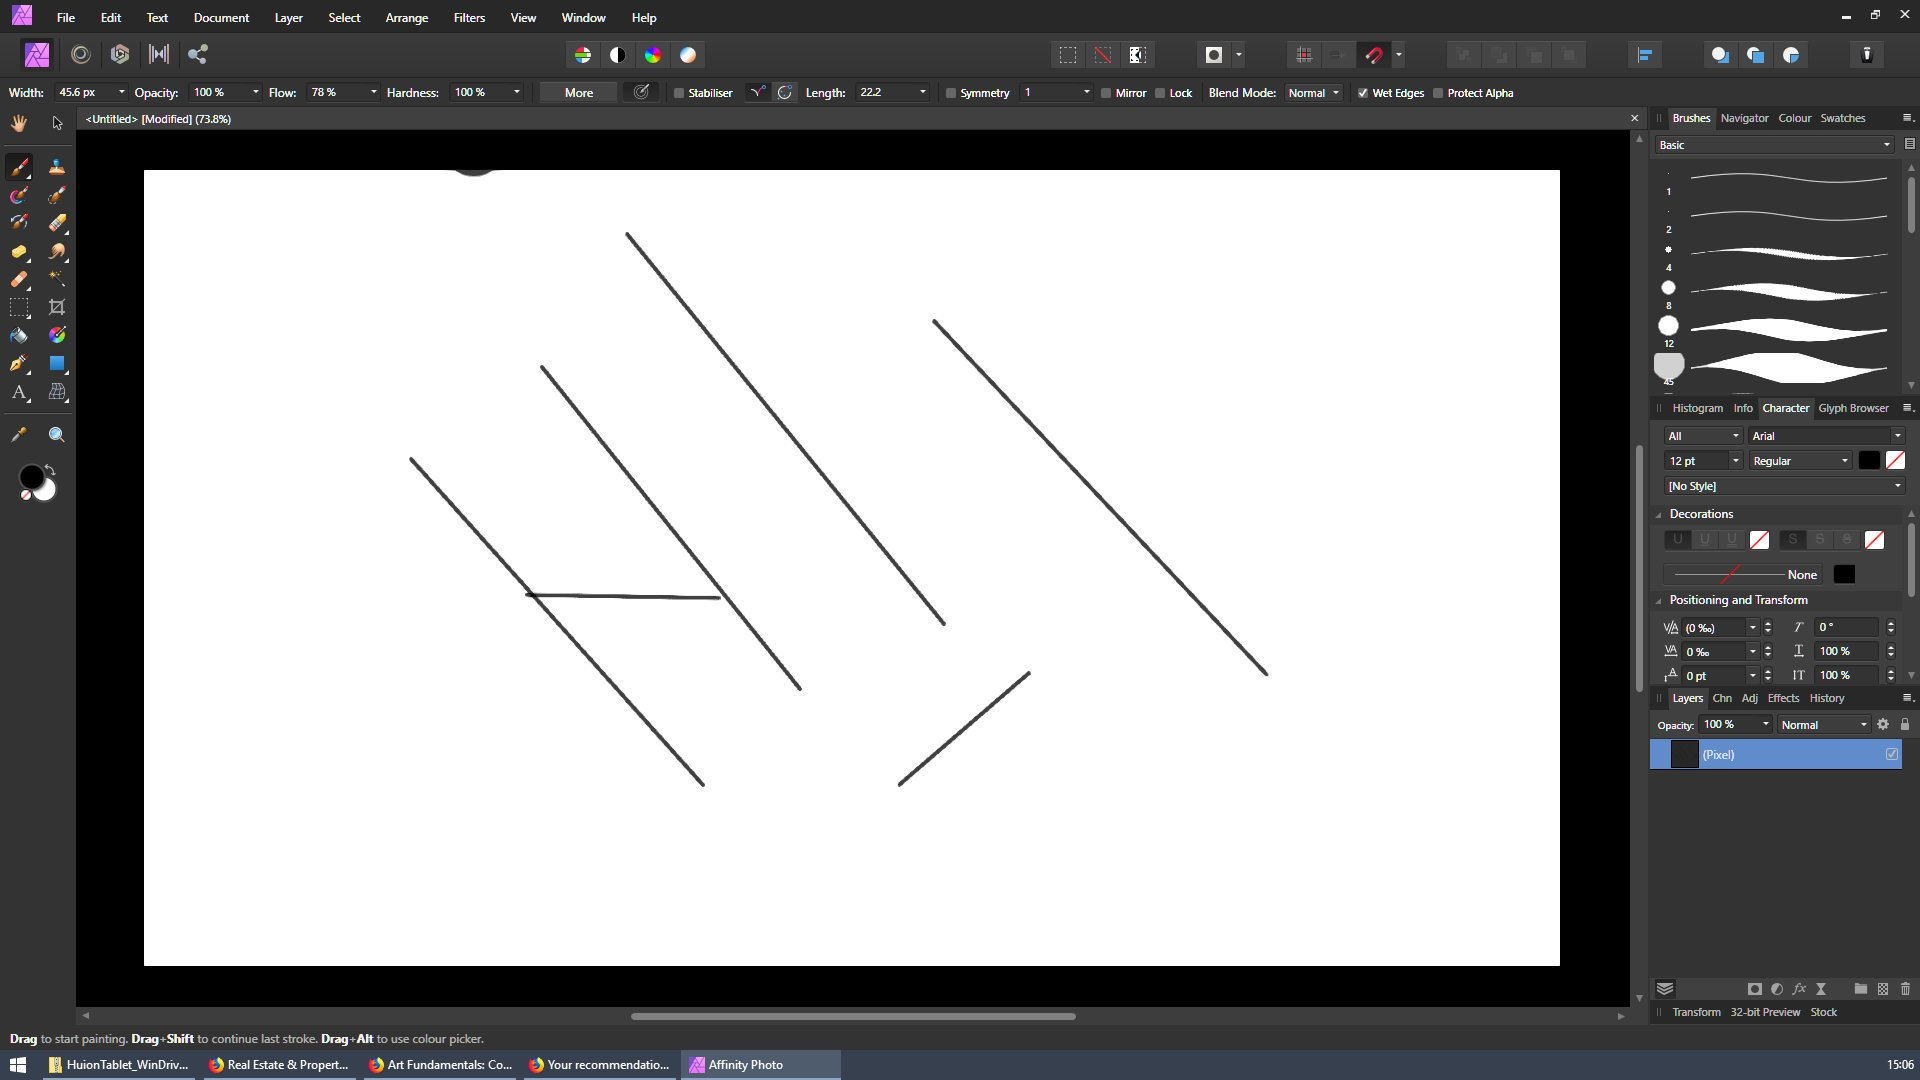 Affinity Photo Not working with Huion Kamvas 16 Pro